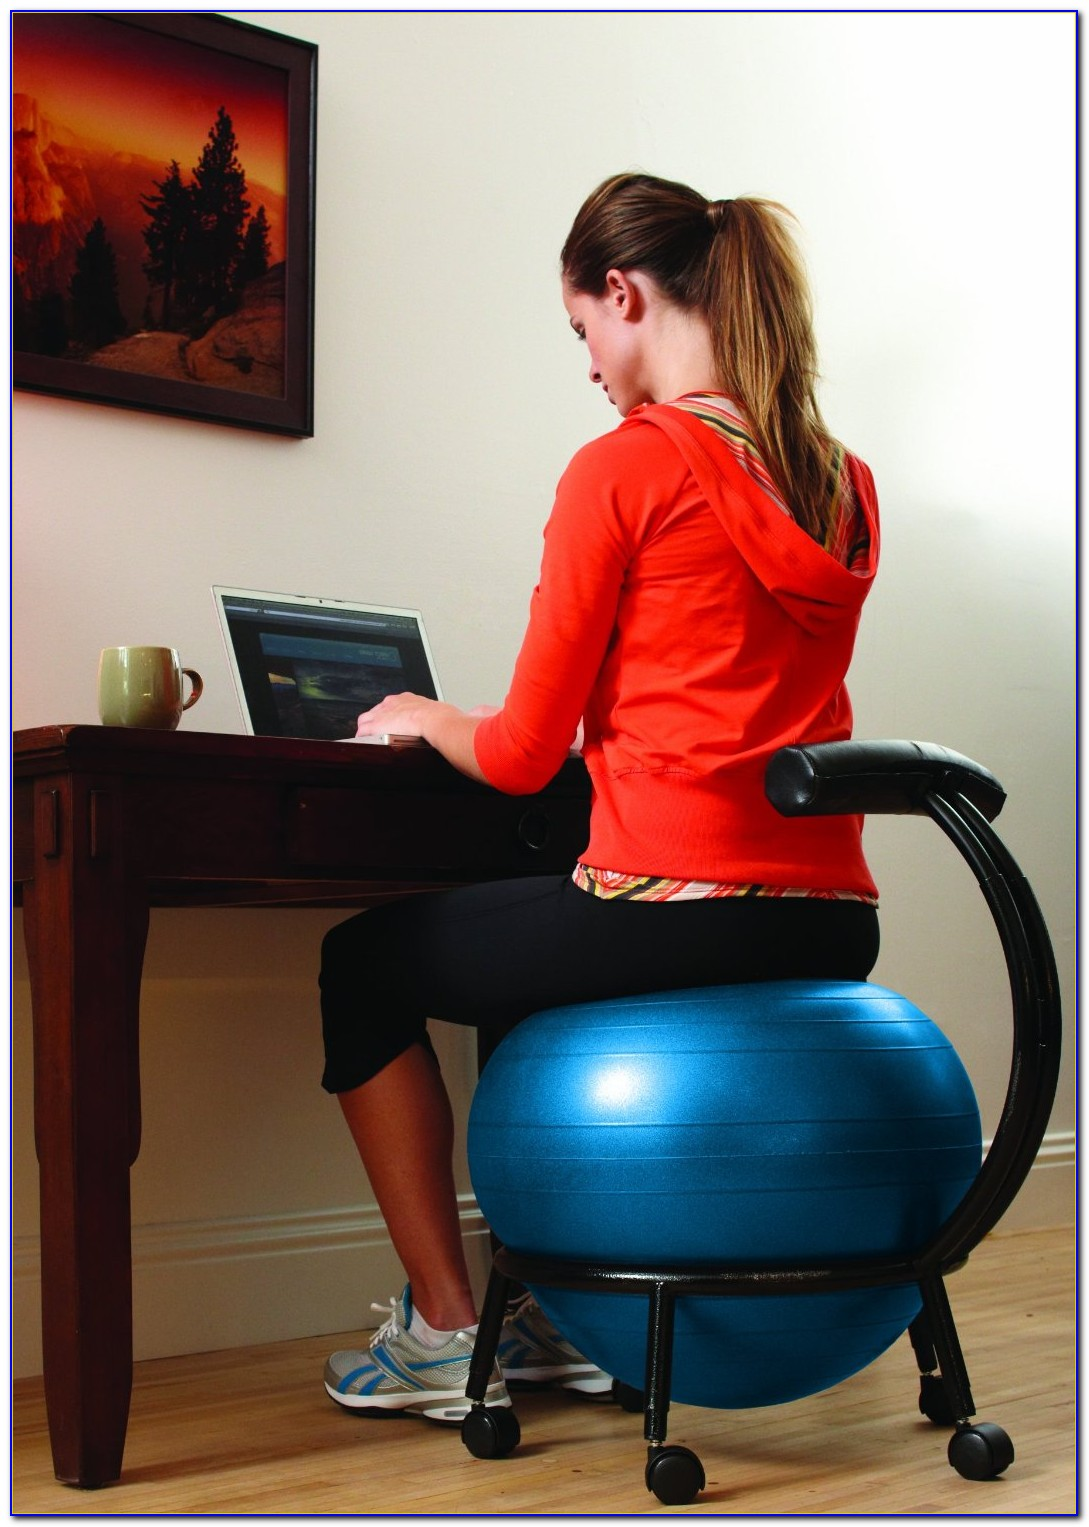 Yoga Ball Desk Chair Yoga Ball Desk Chair Exercises Desk Home Design Ideas